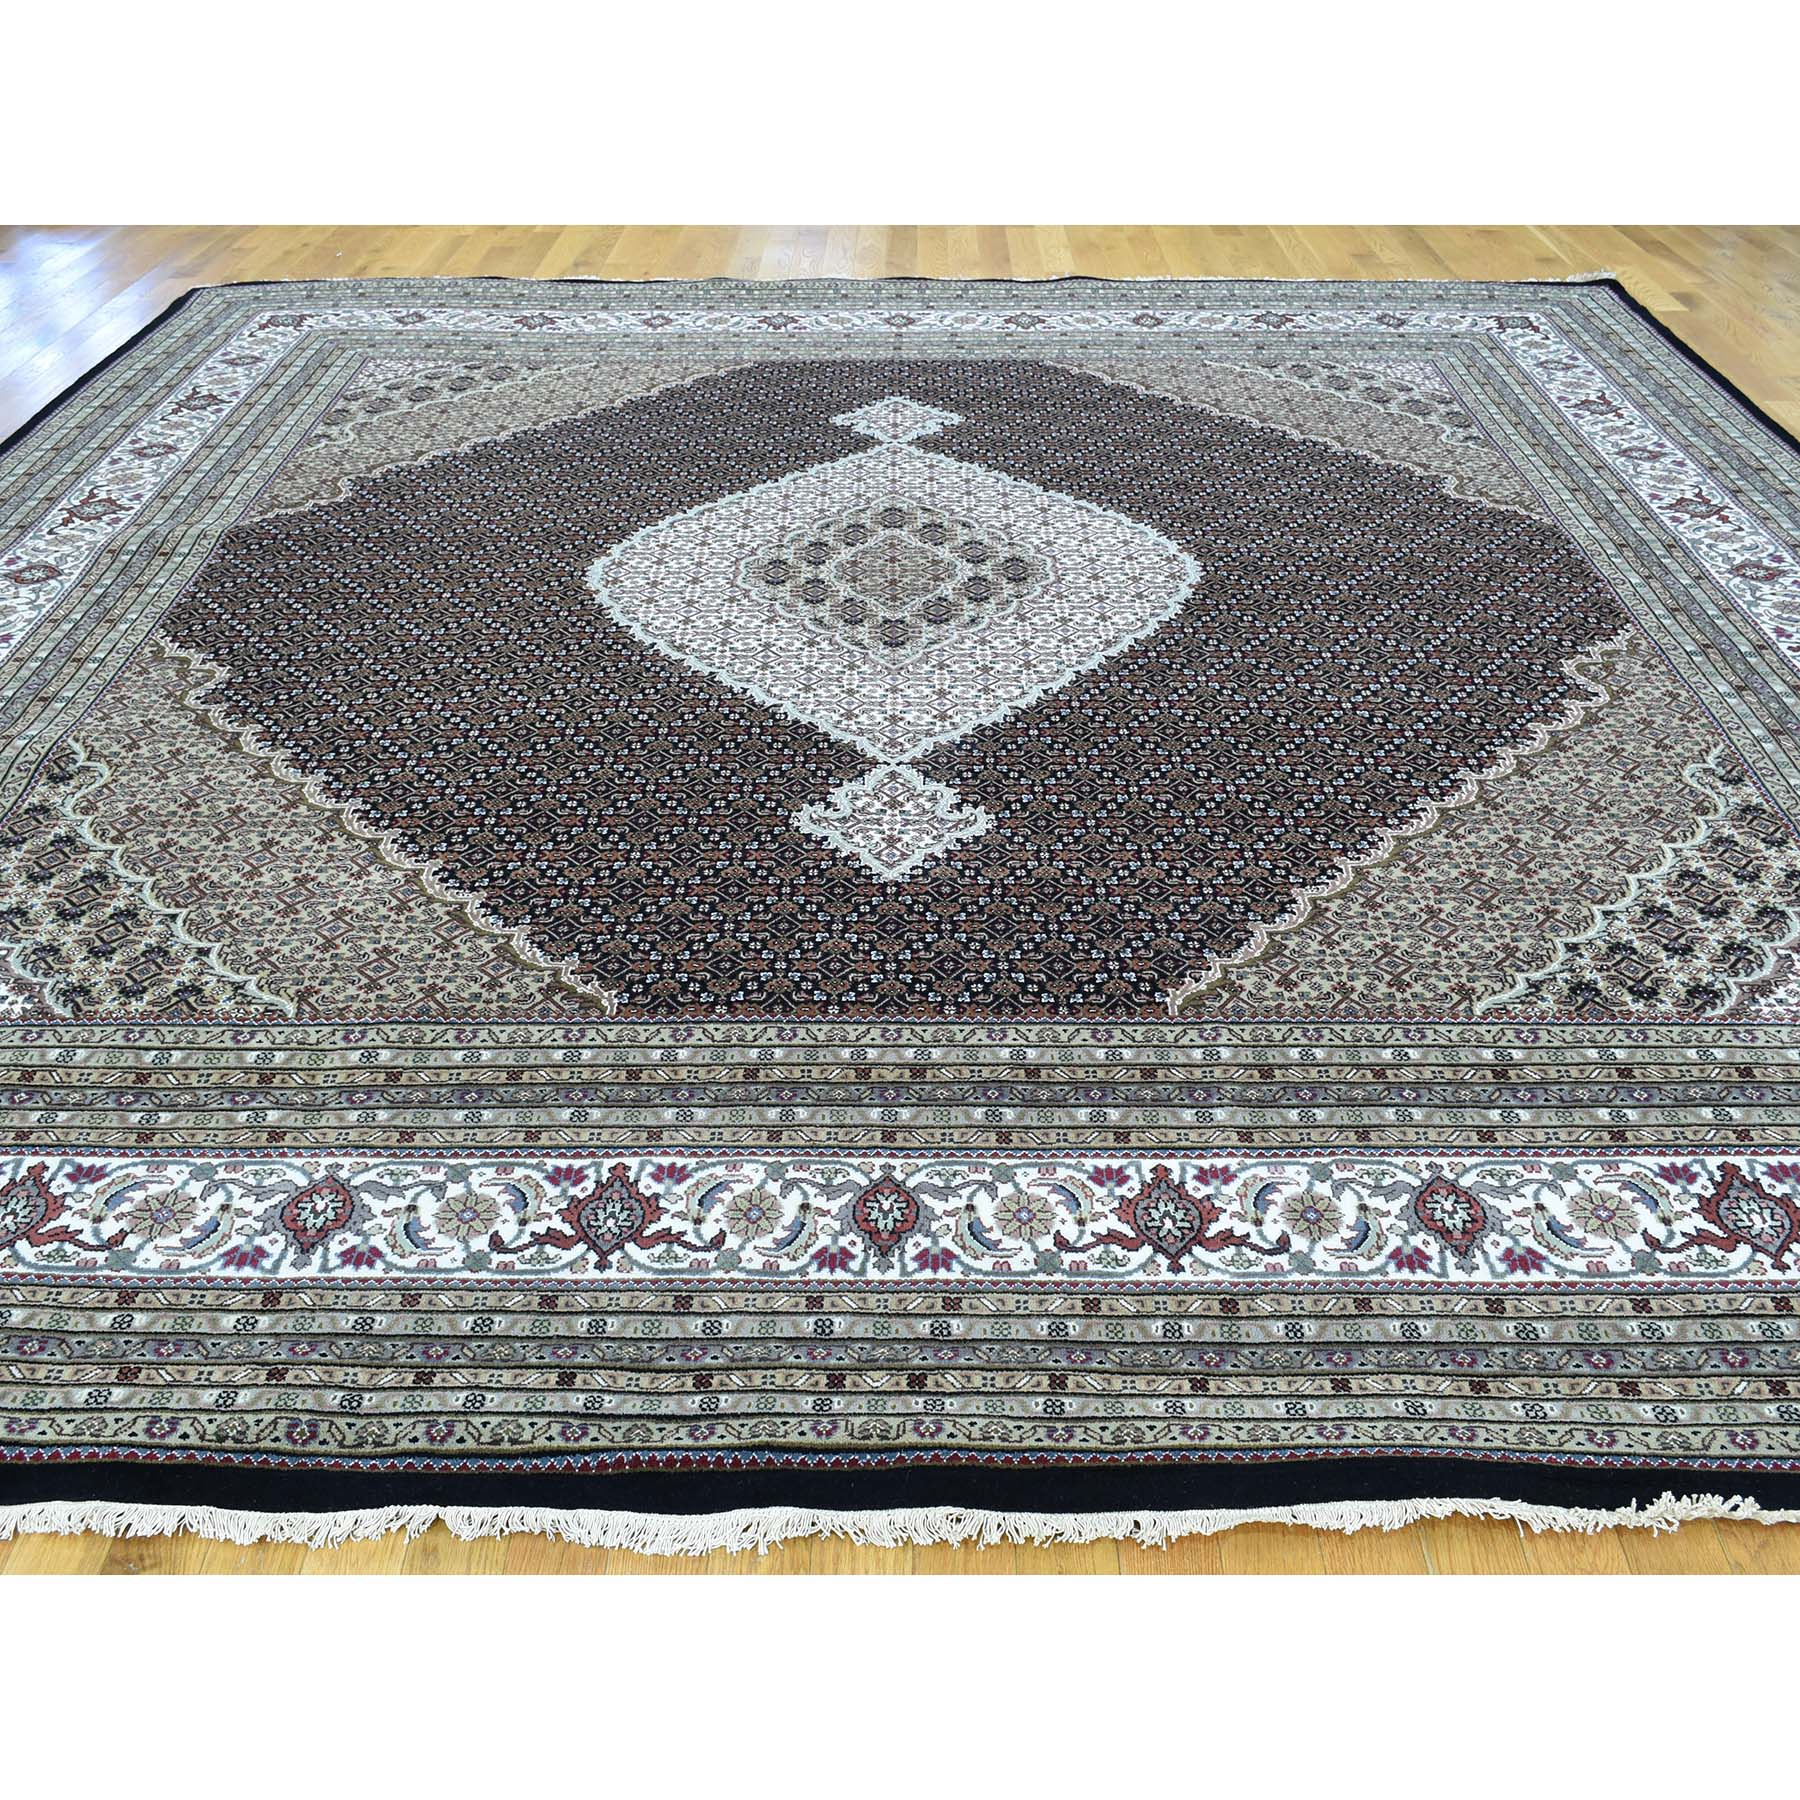 12-x12- Square Hand-Knotted Wool and Silk Tabriz Mahi Oriental Rug